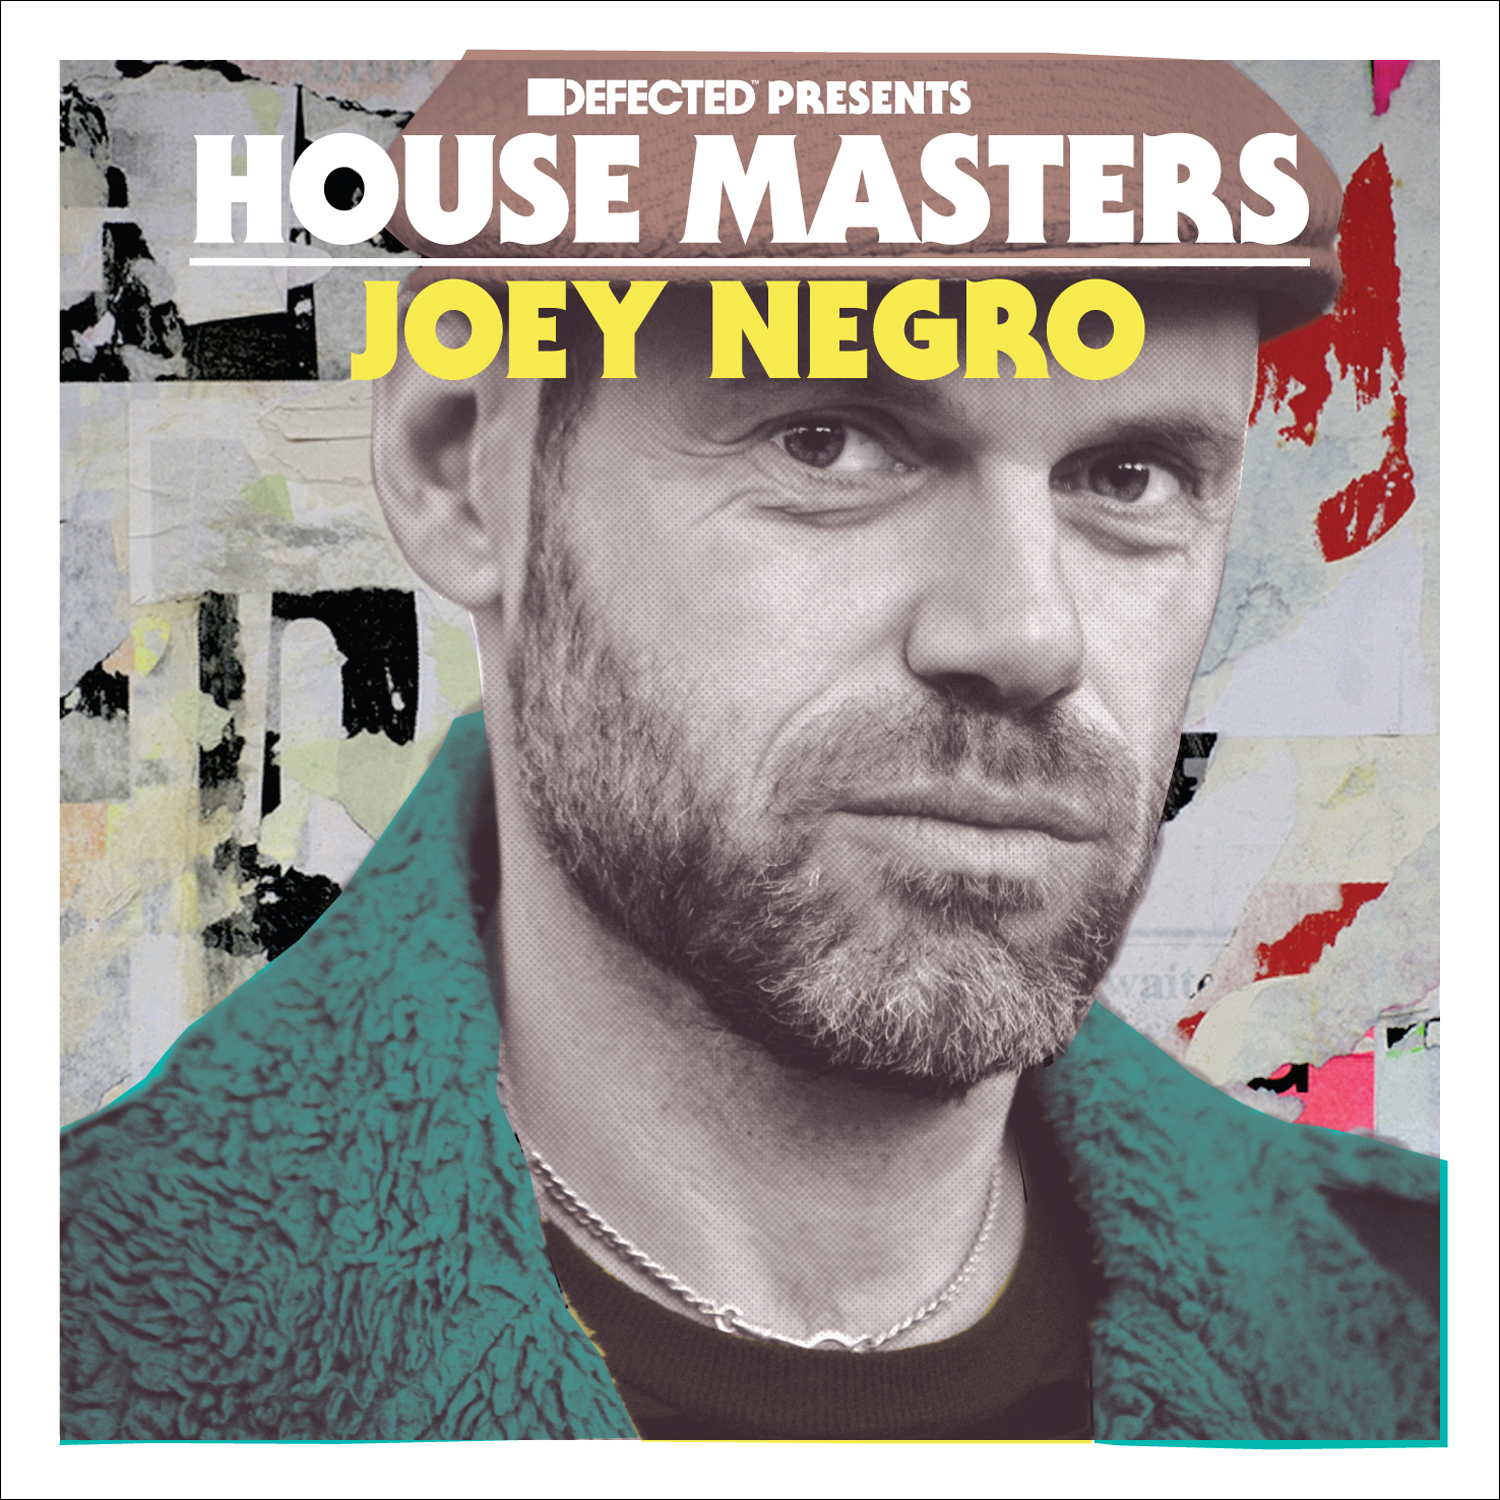 Defected Presents - House Masters - Joey Negro.